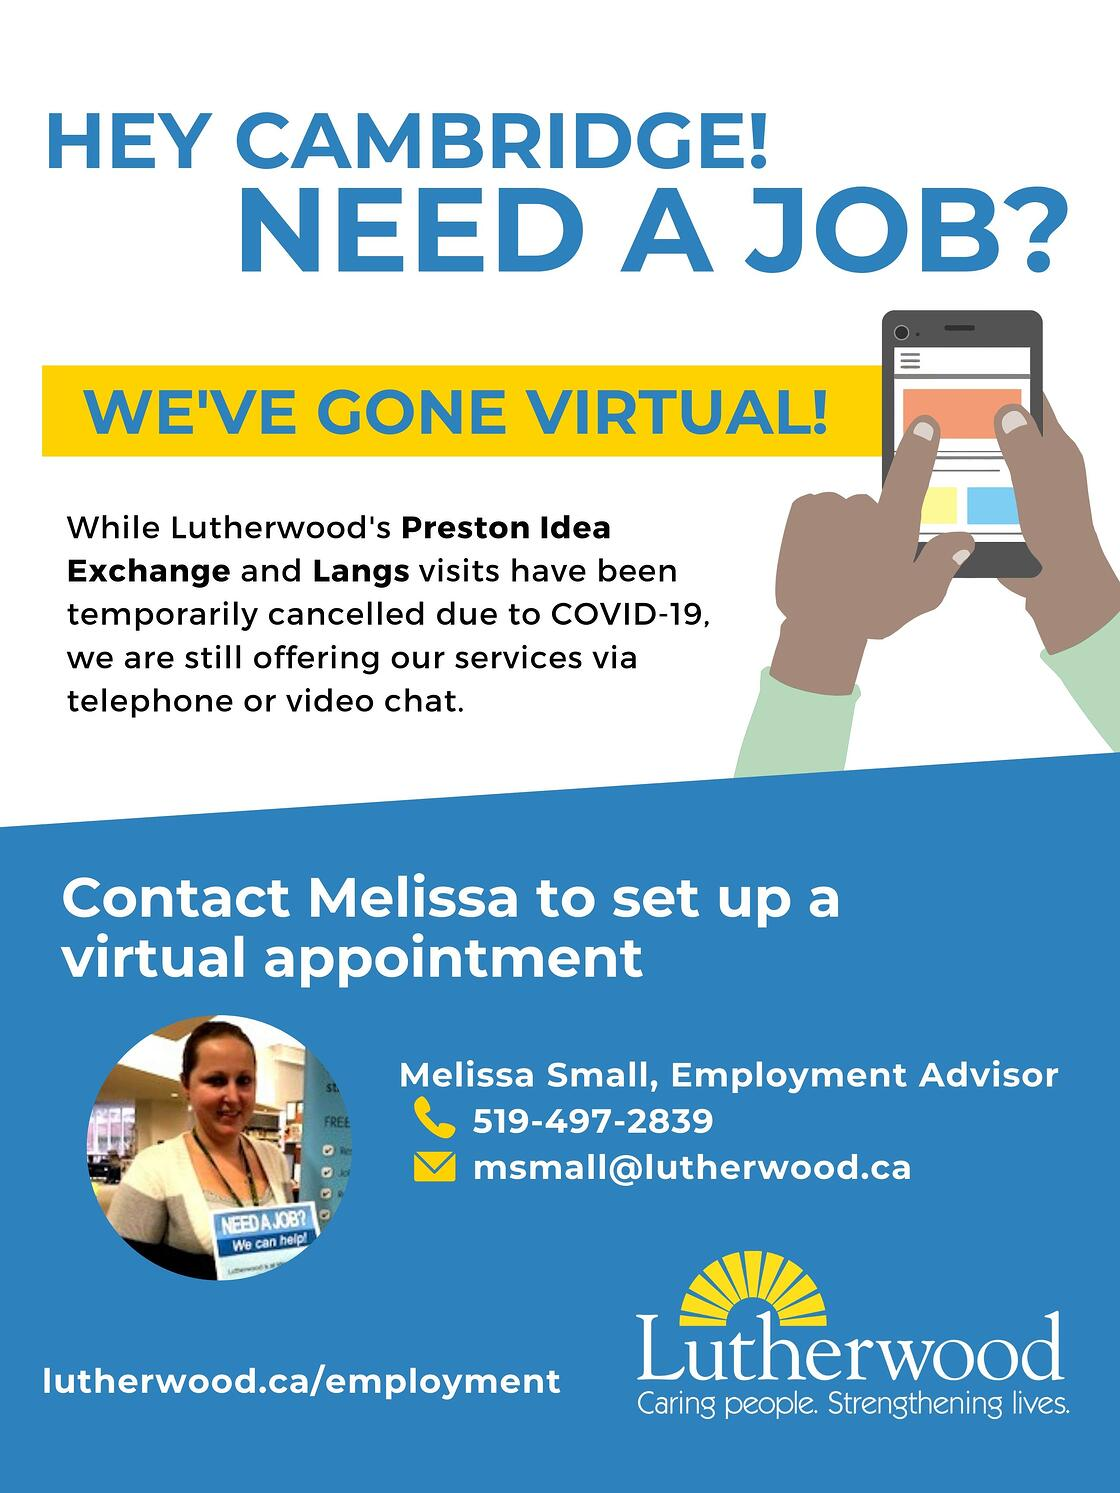 Contact Melissa an employment advisor if you are looking for a job in cambridge